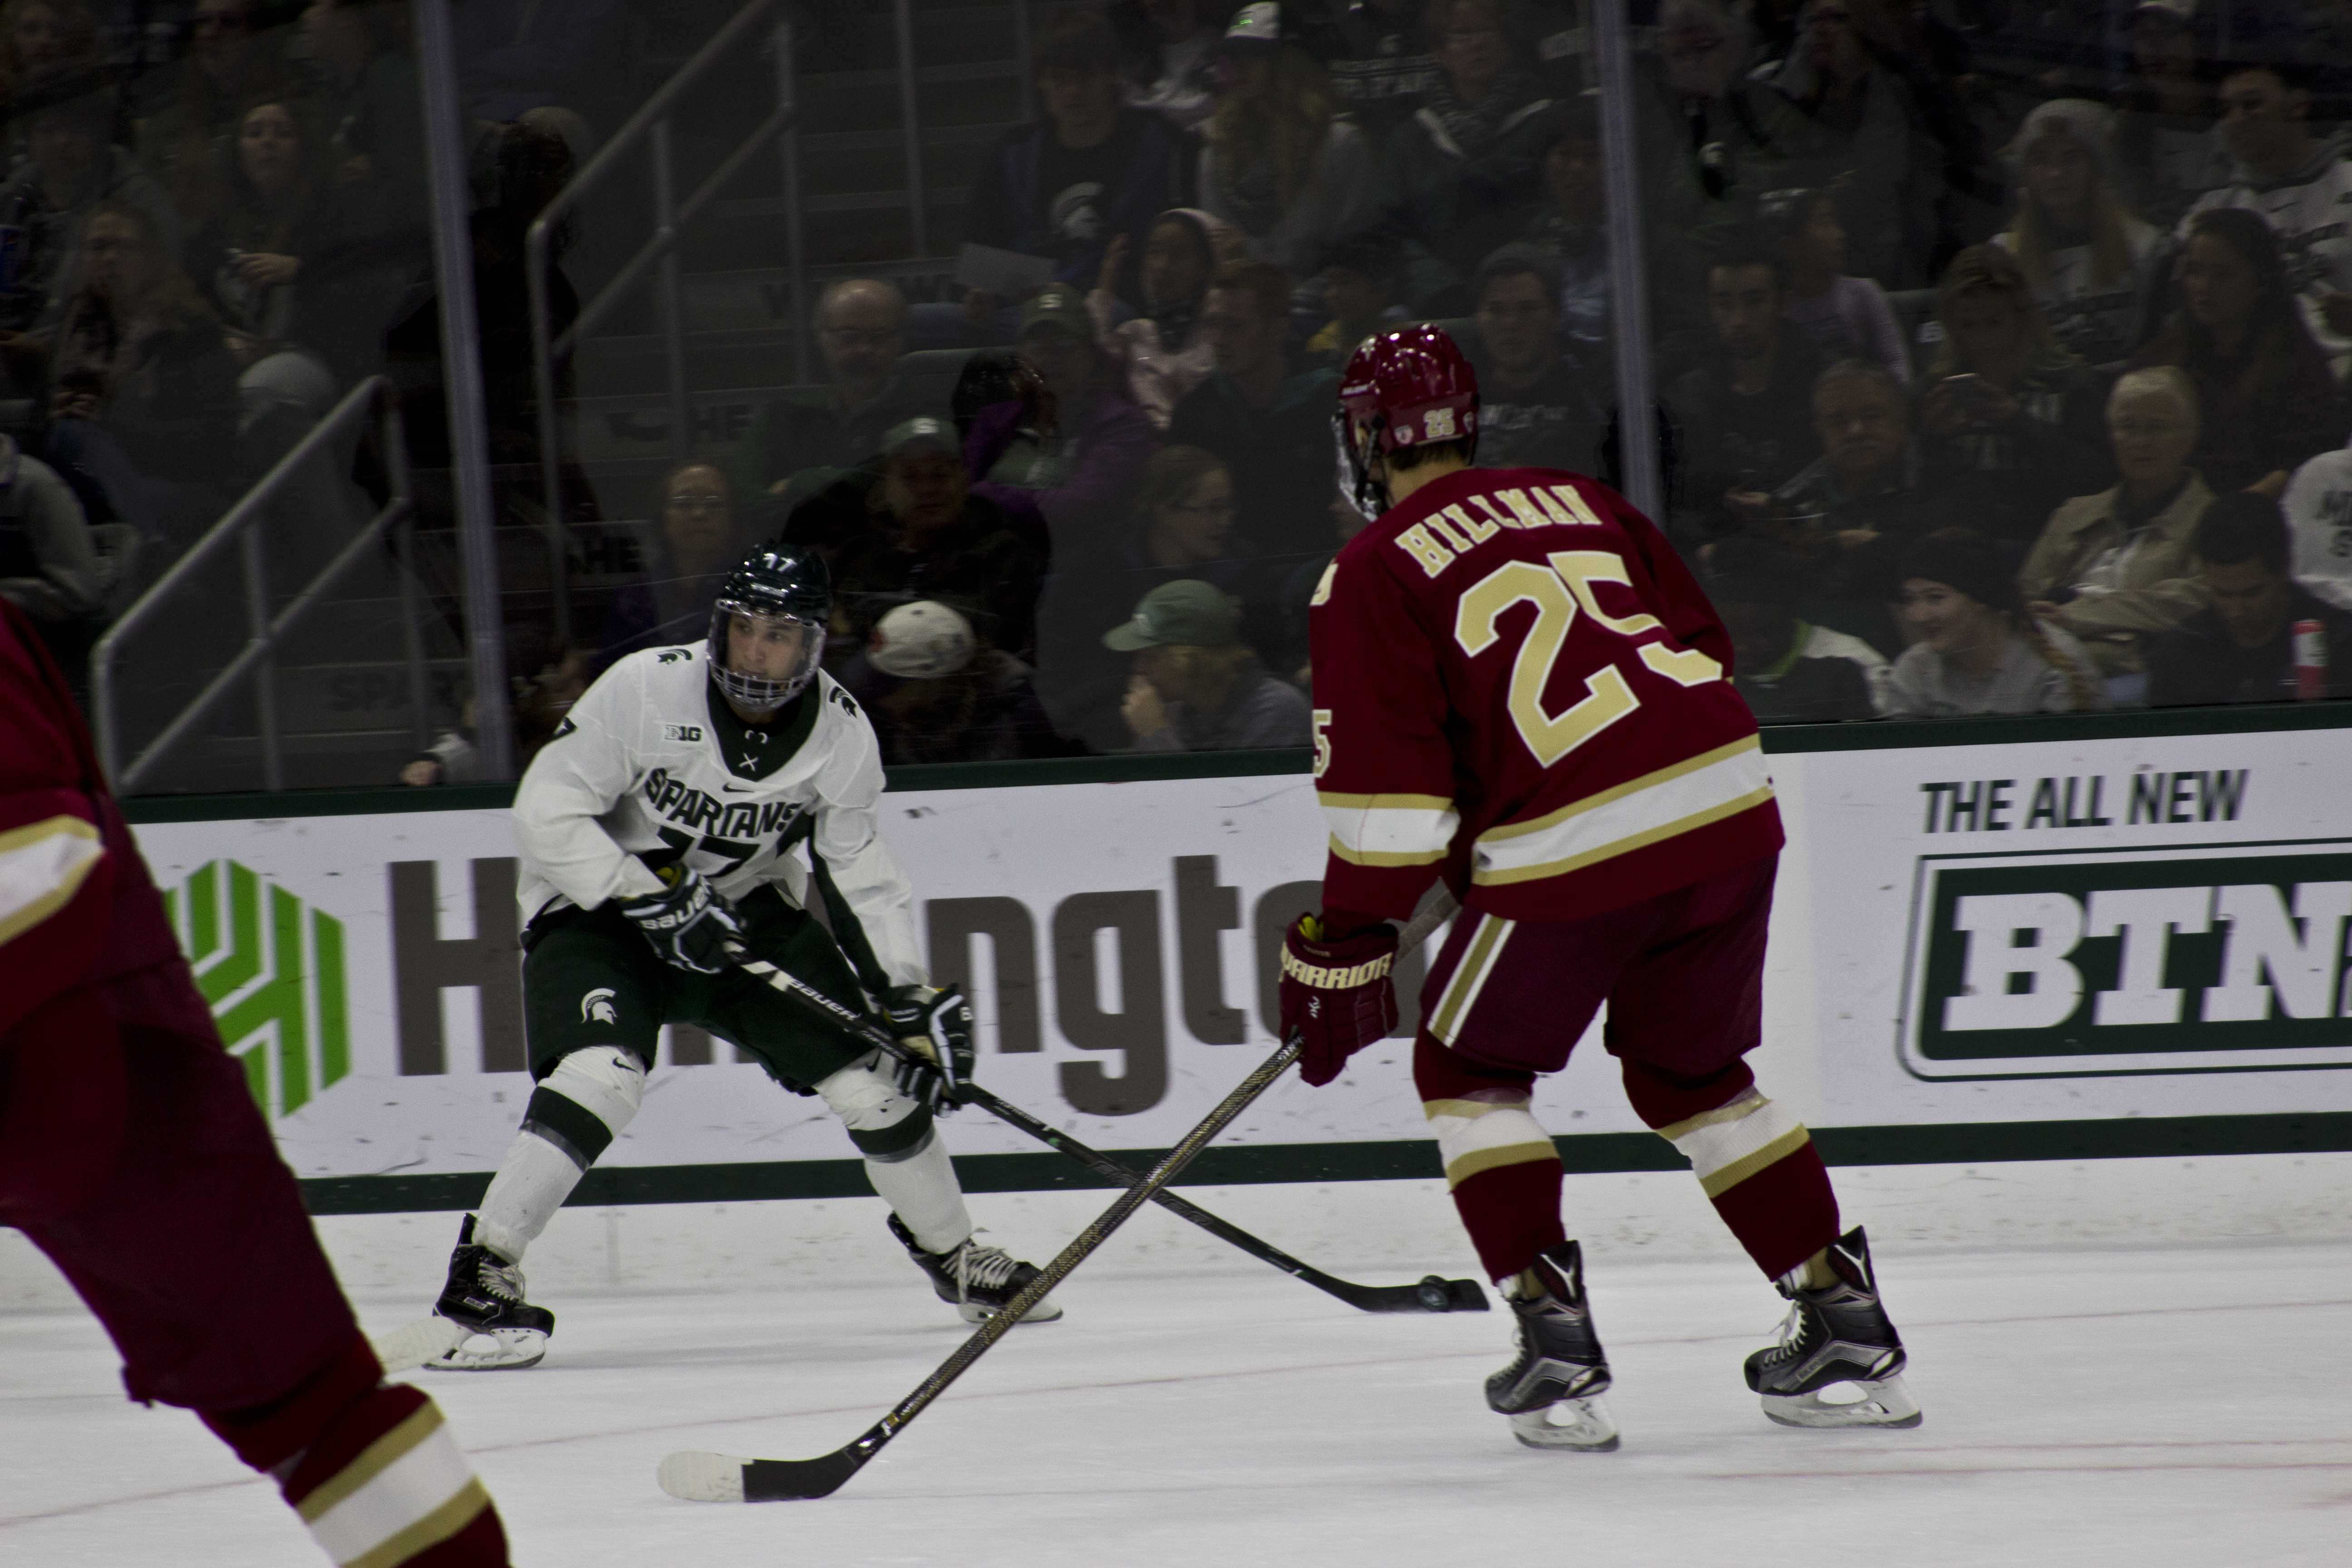 Spartans Lose To Denver, Swept For Second Straight Weekend